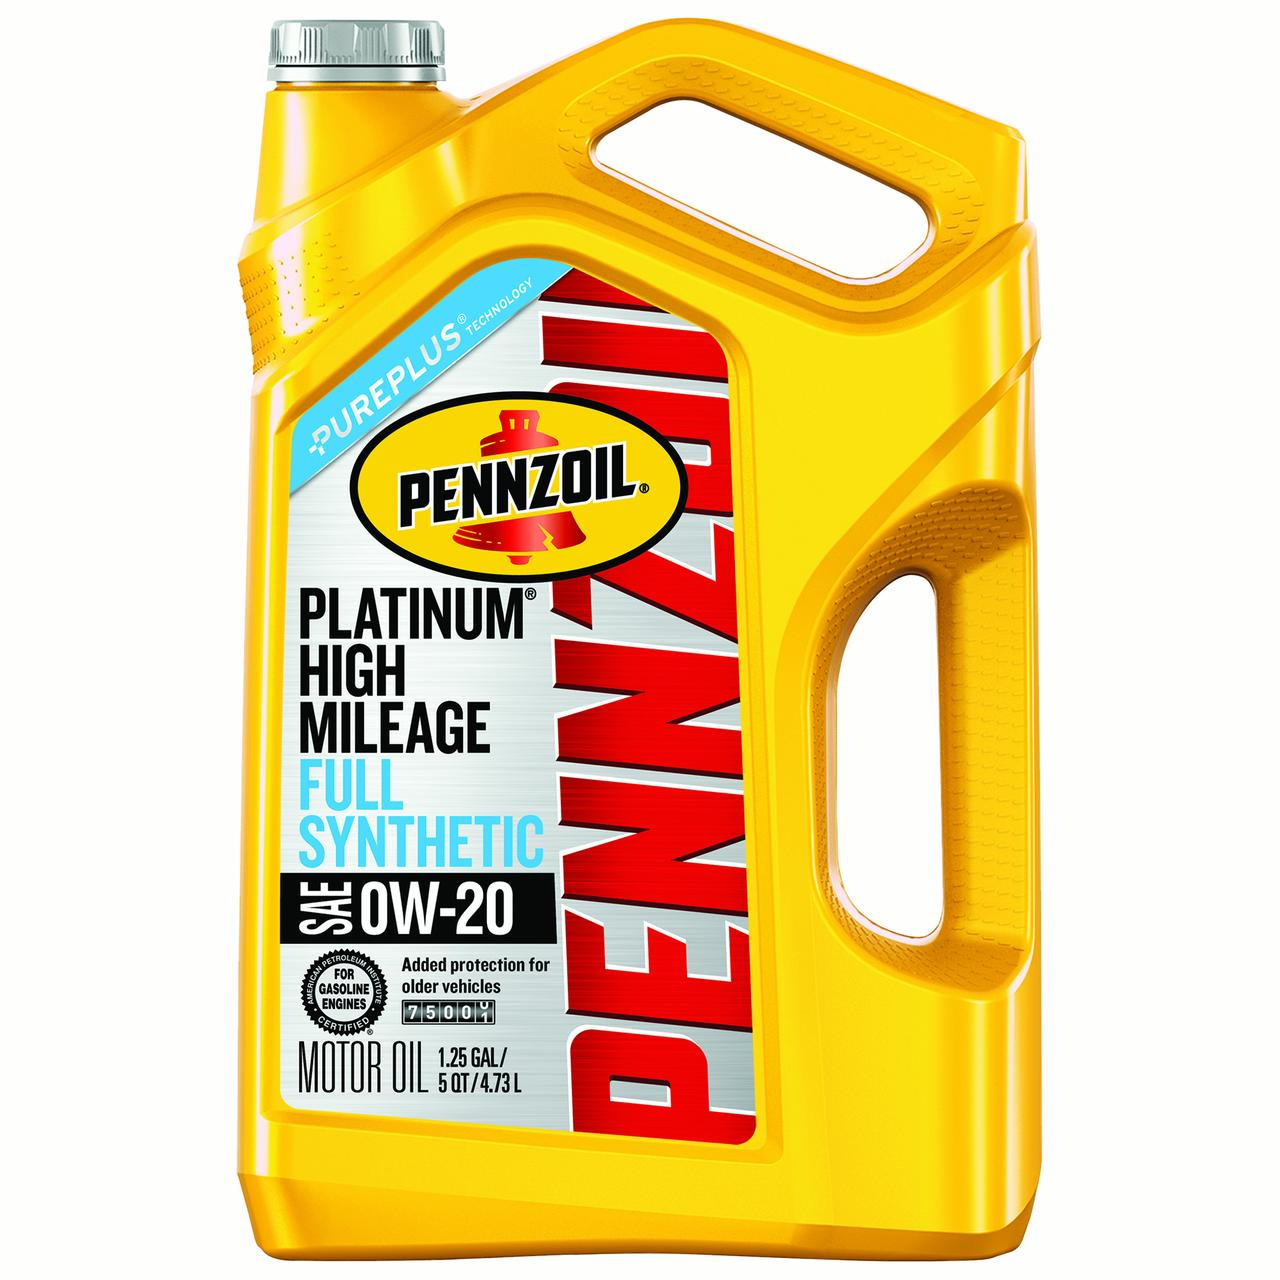 Pennzoil Platinum High Mileage 0W-20 Full Synthetic Motor Oil, 5 qt